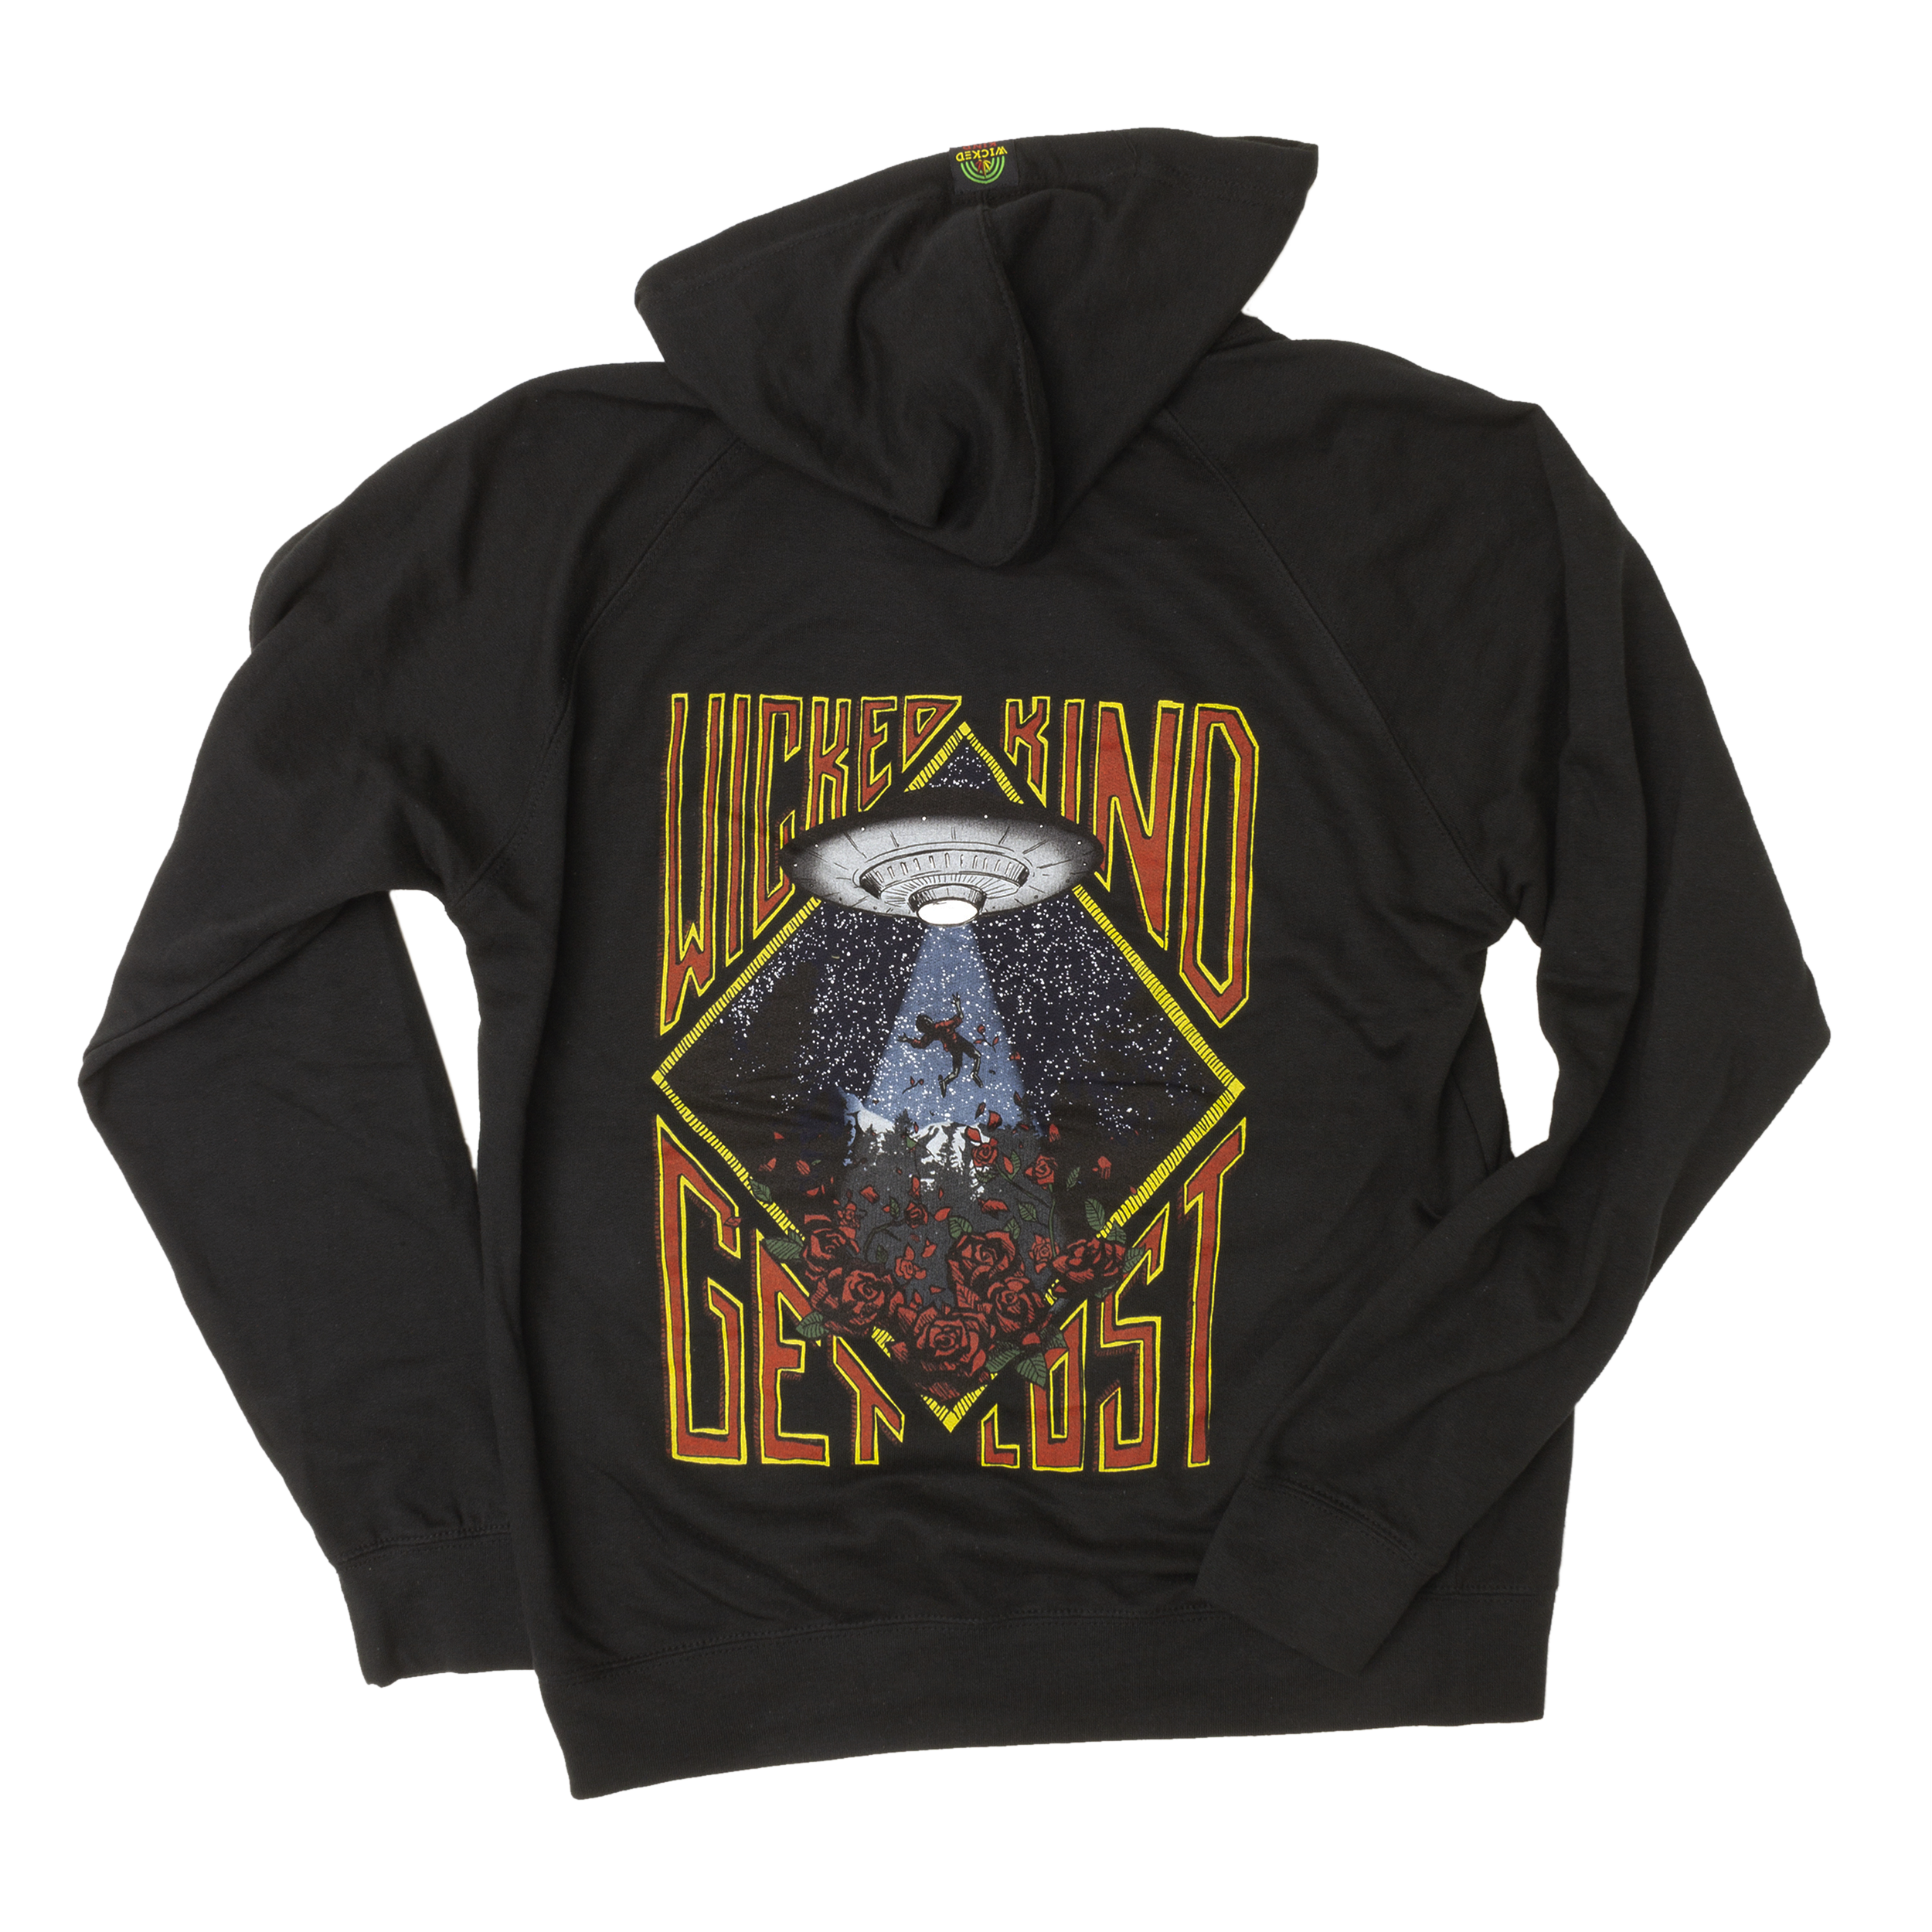 Get Lost Hand Drawn Black Hoodie